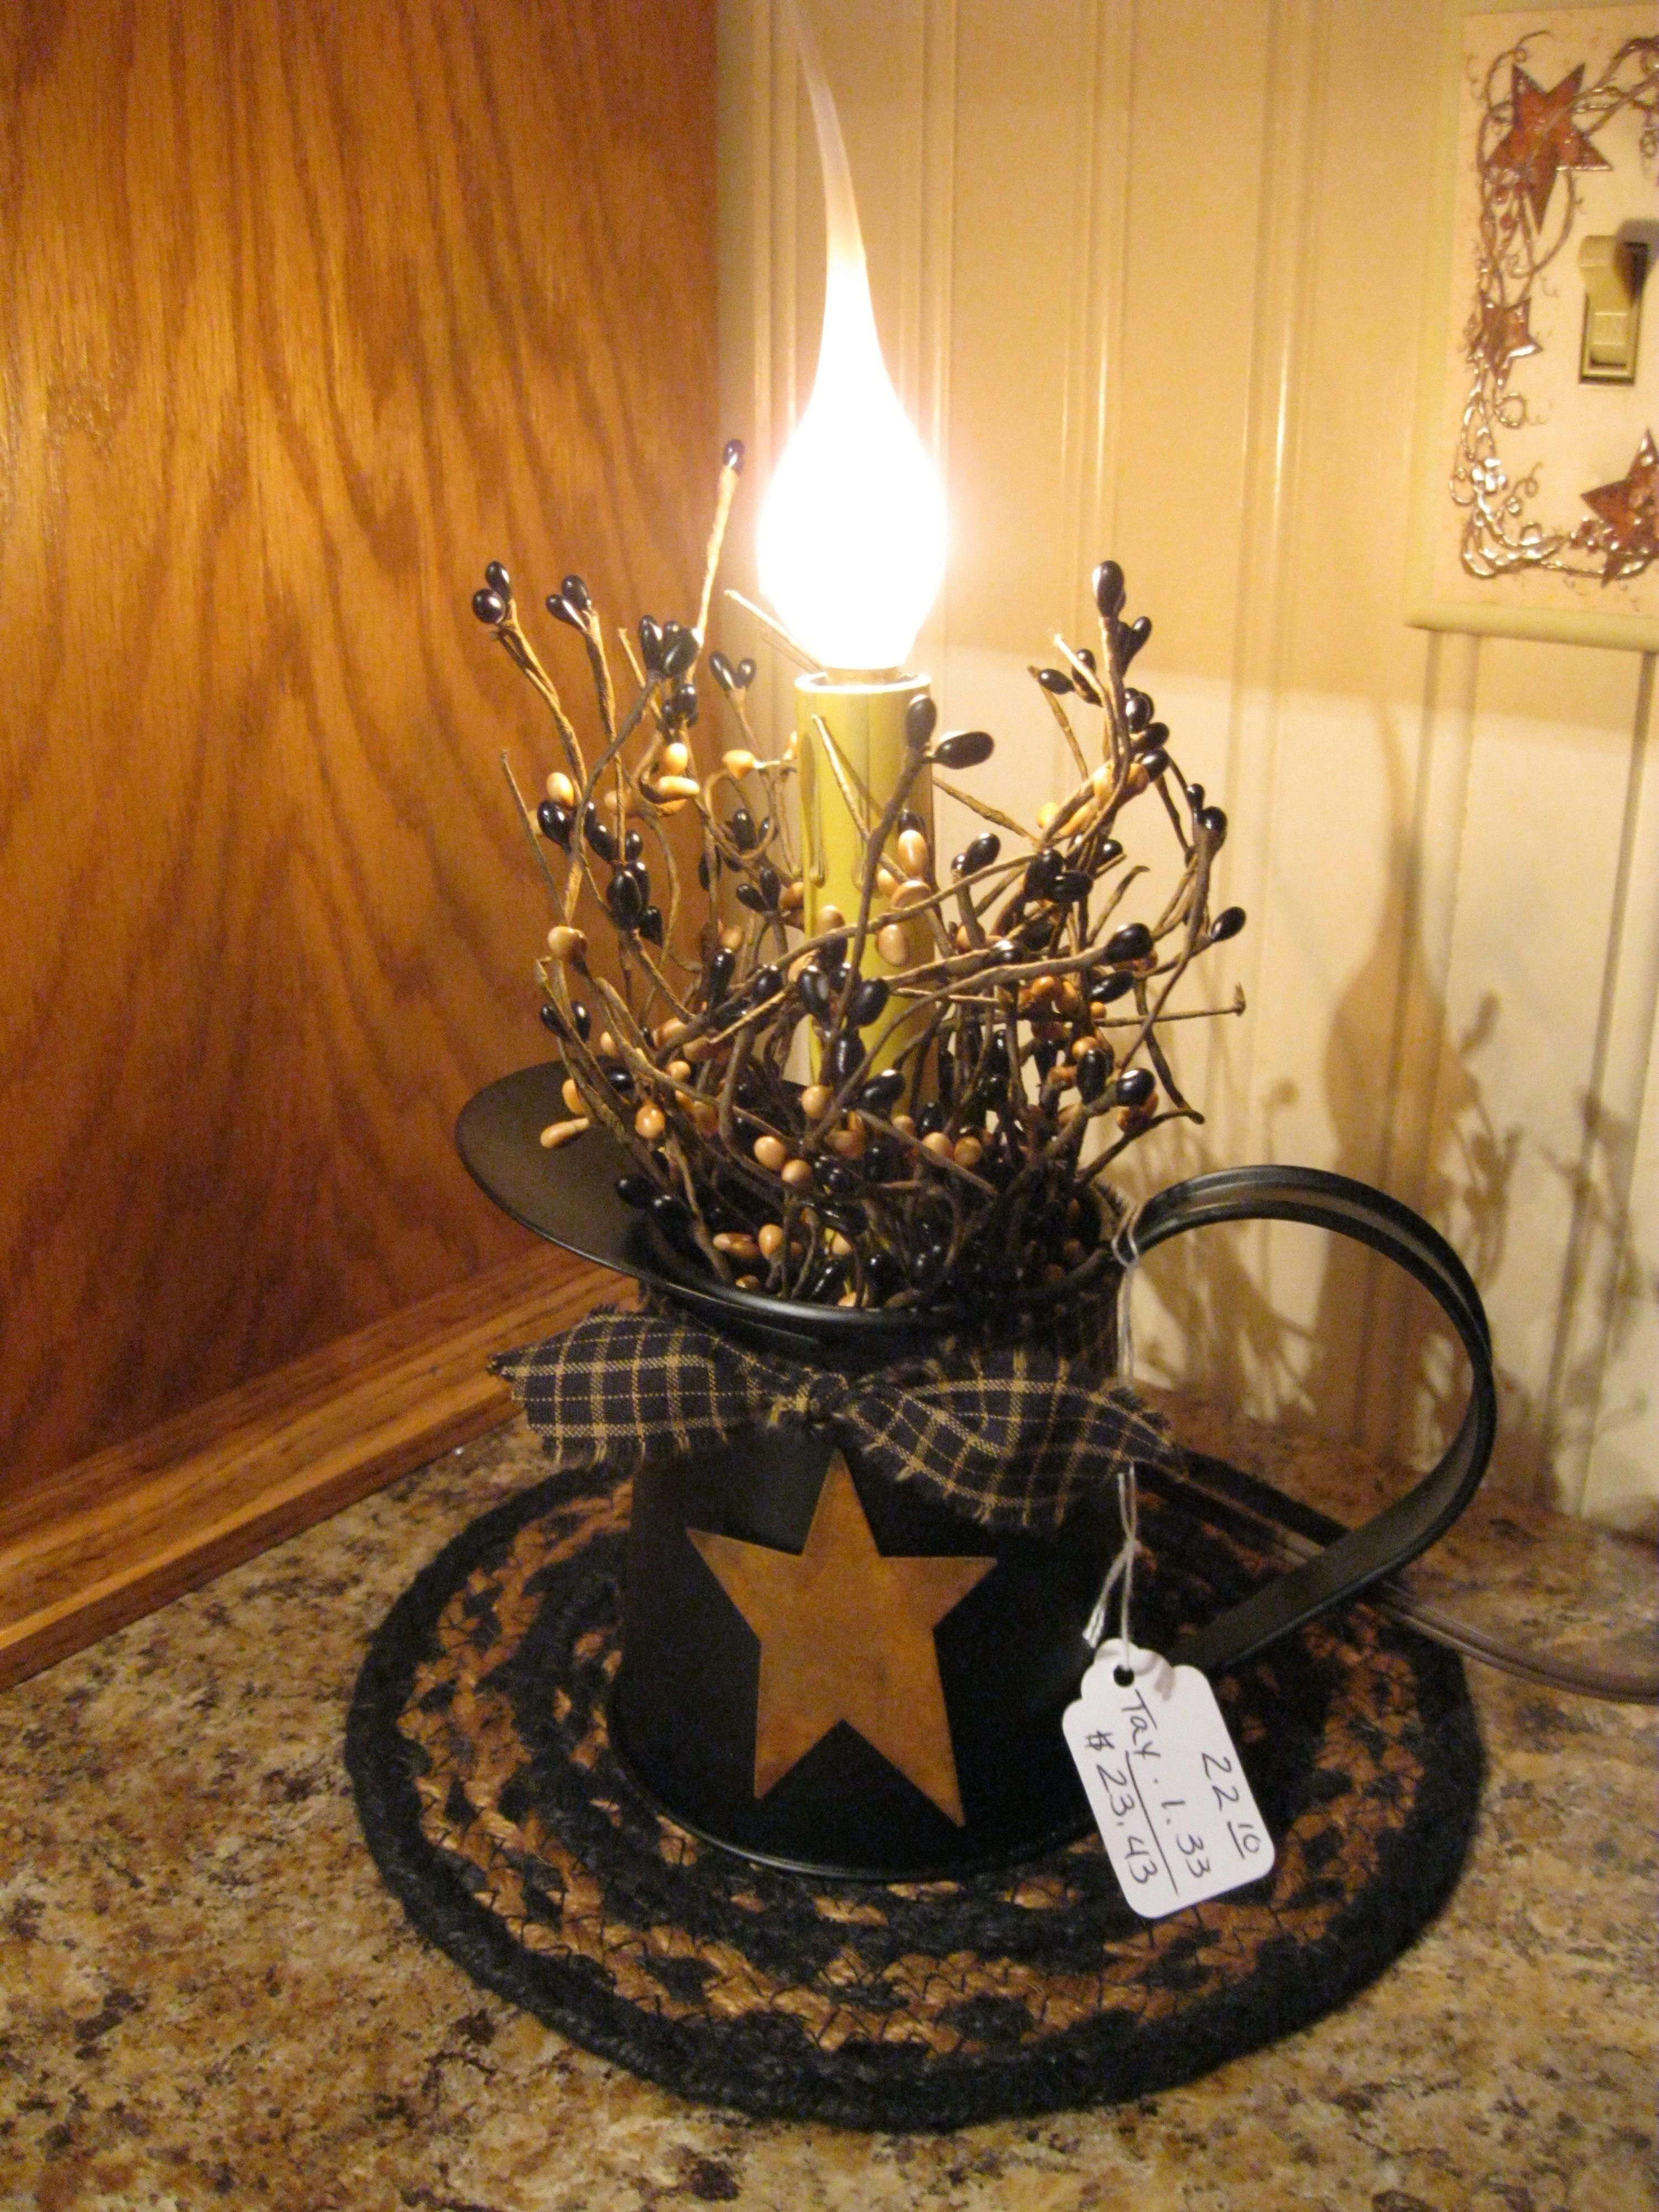 Country Primitive Decor Clearance Countryprimitive Primitive Decorating Primitive Decorating Country Country Decor